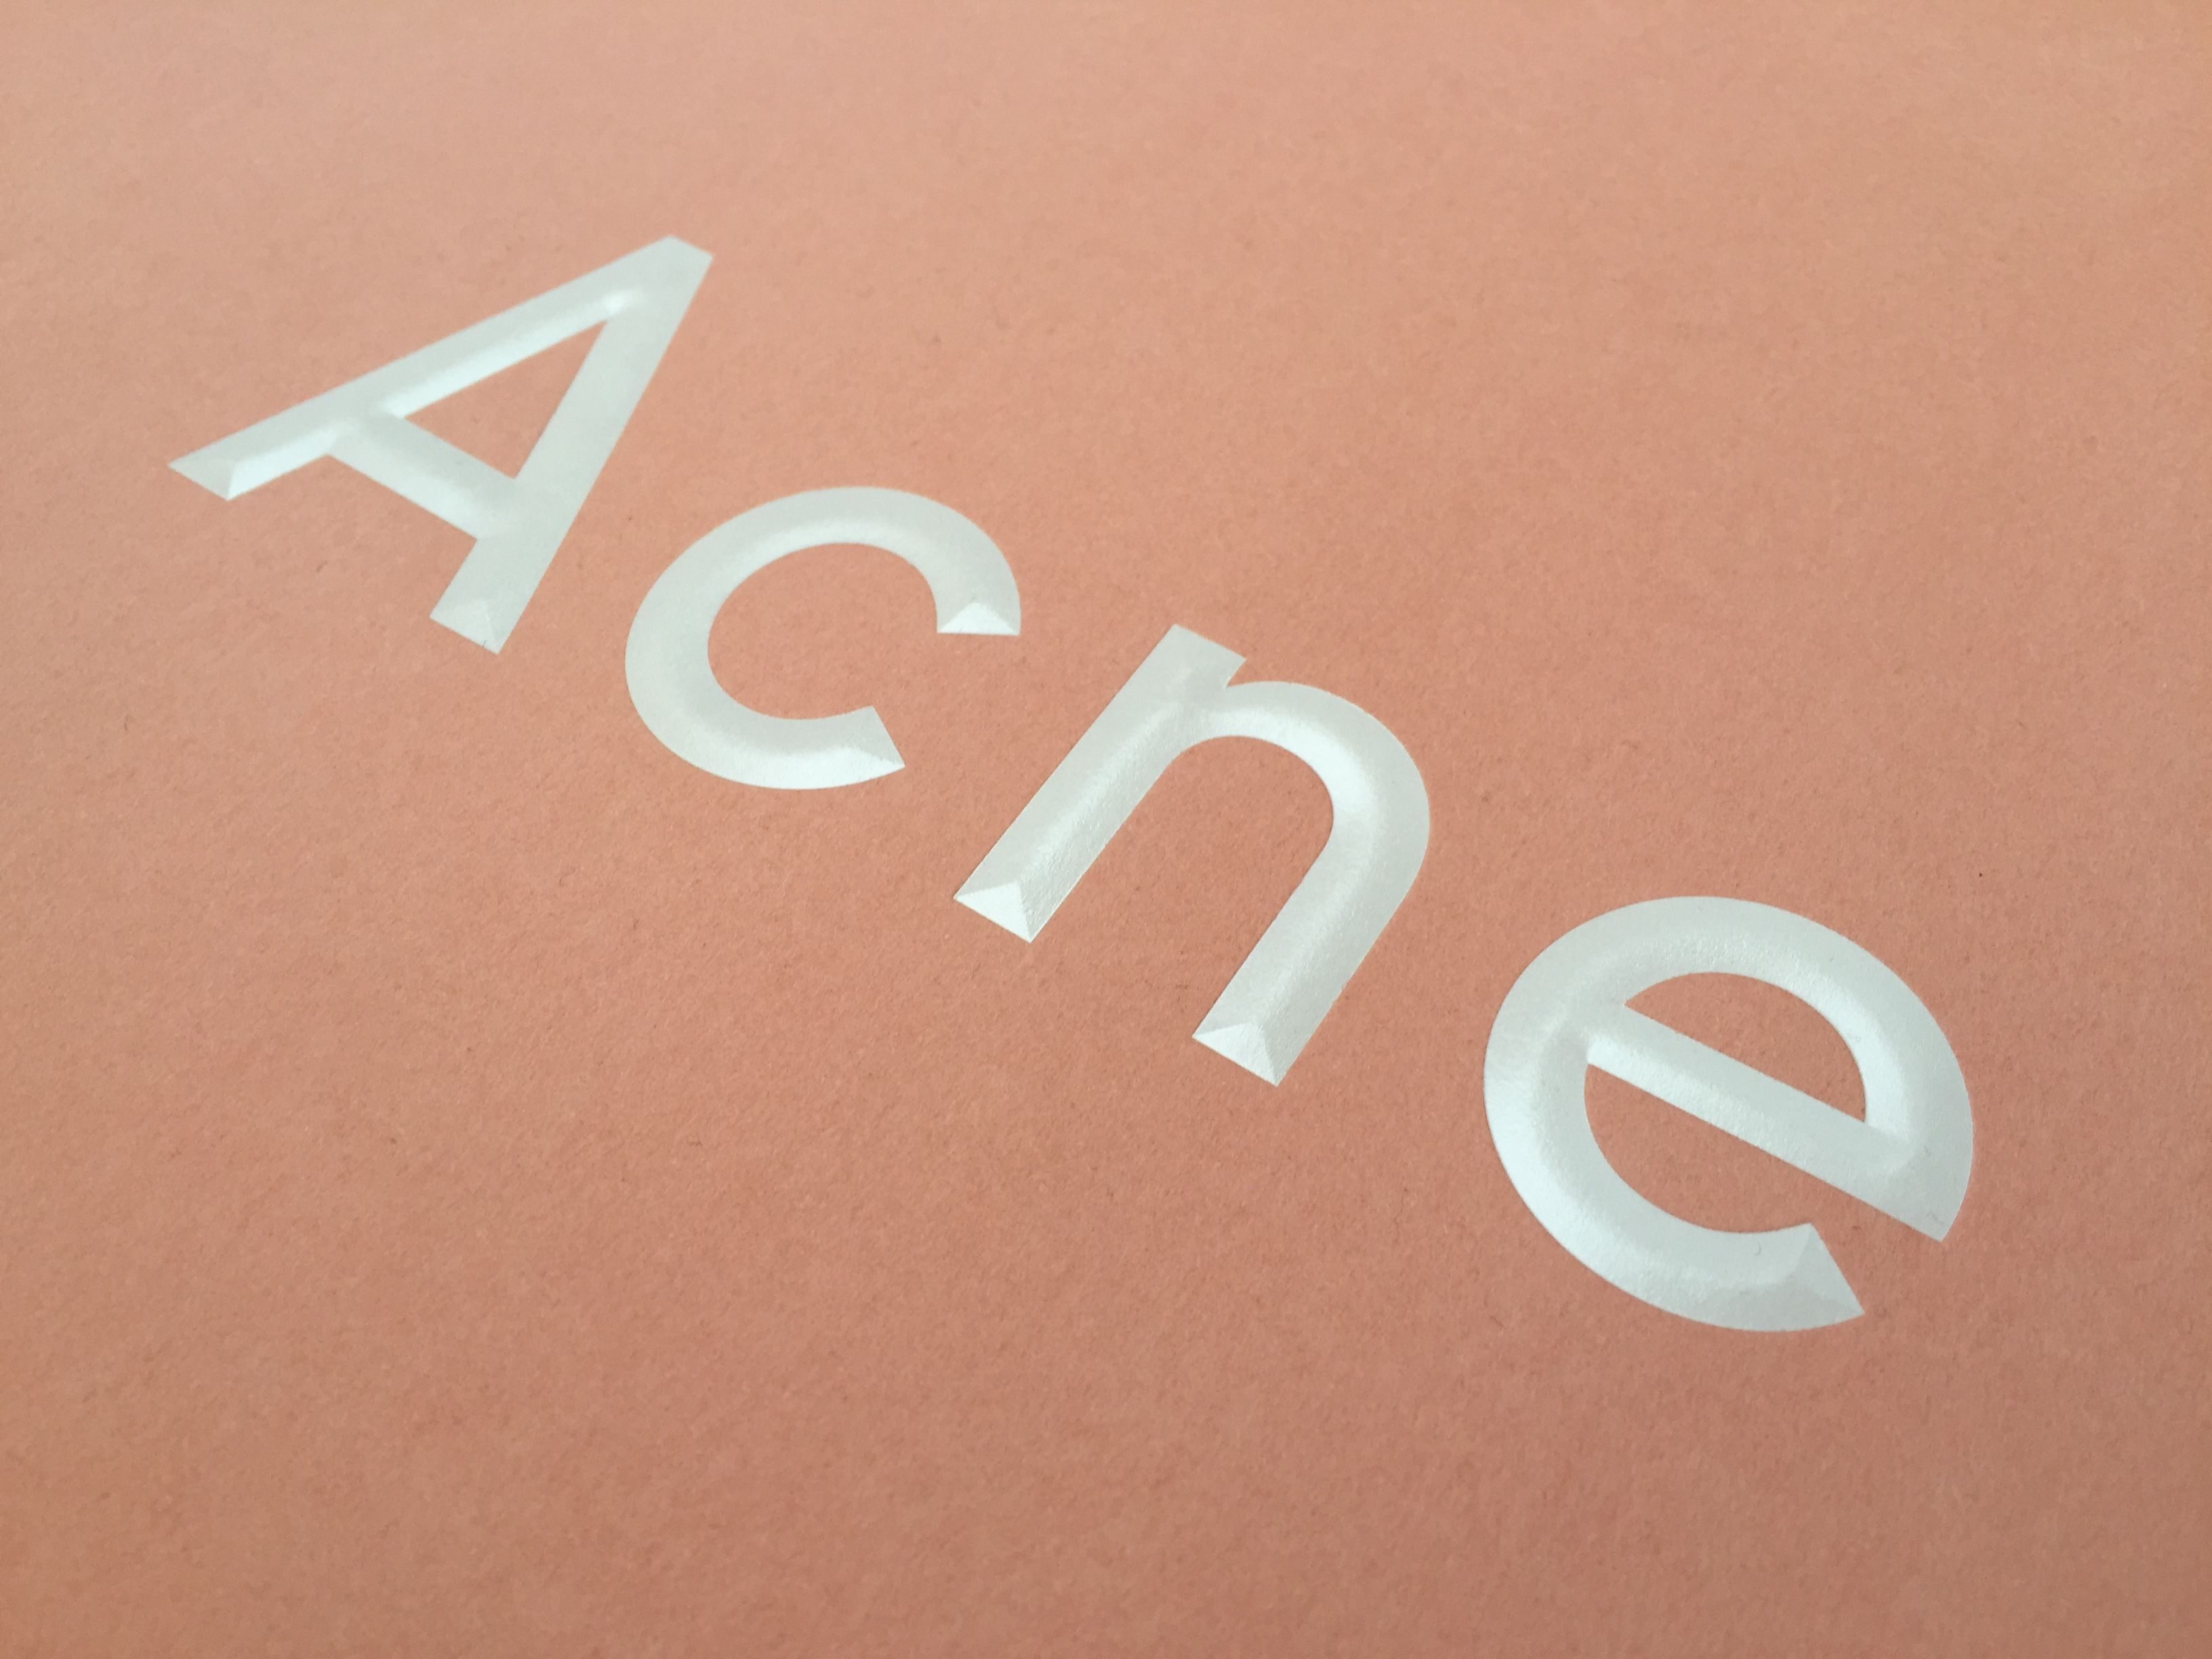 Pin by sara strand on technique pinterest printed matter print finishes acne paper printed matter print design acne studios business cards brand identity signage invitation reheart